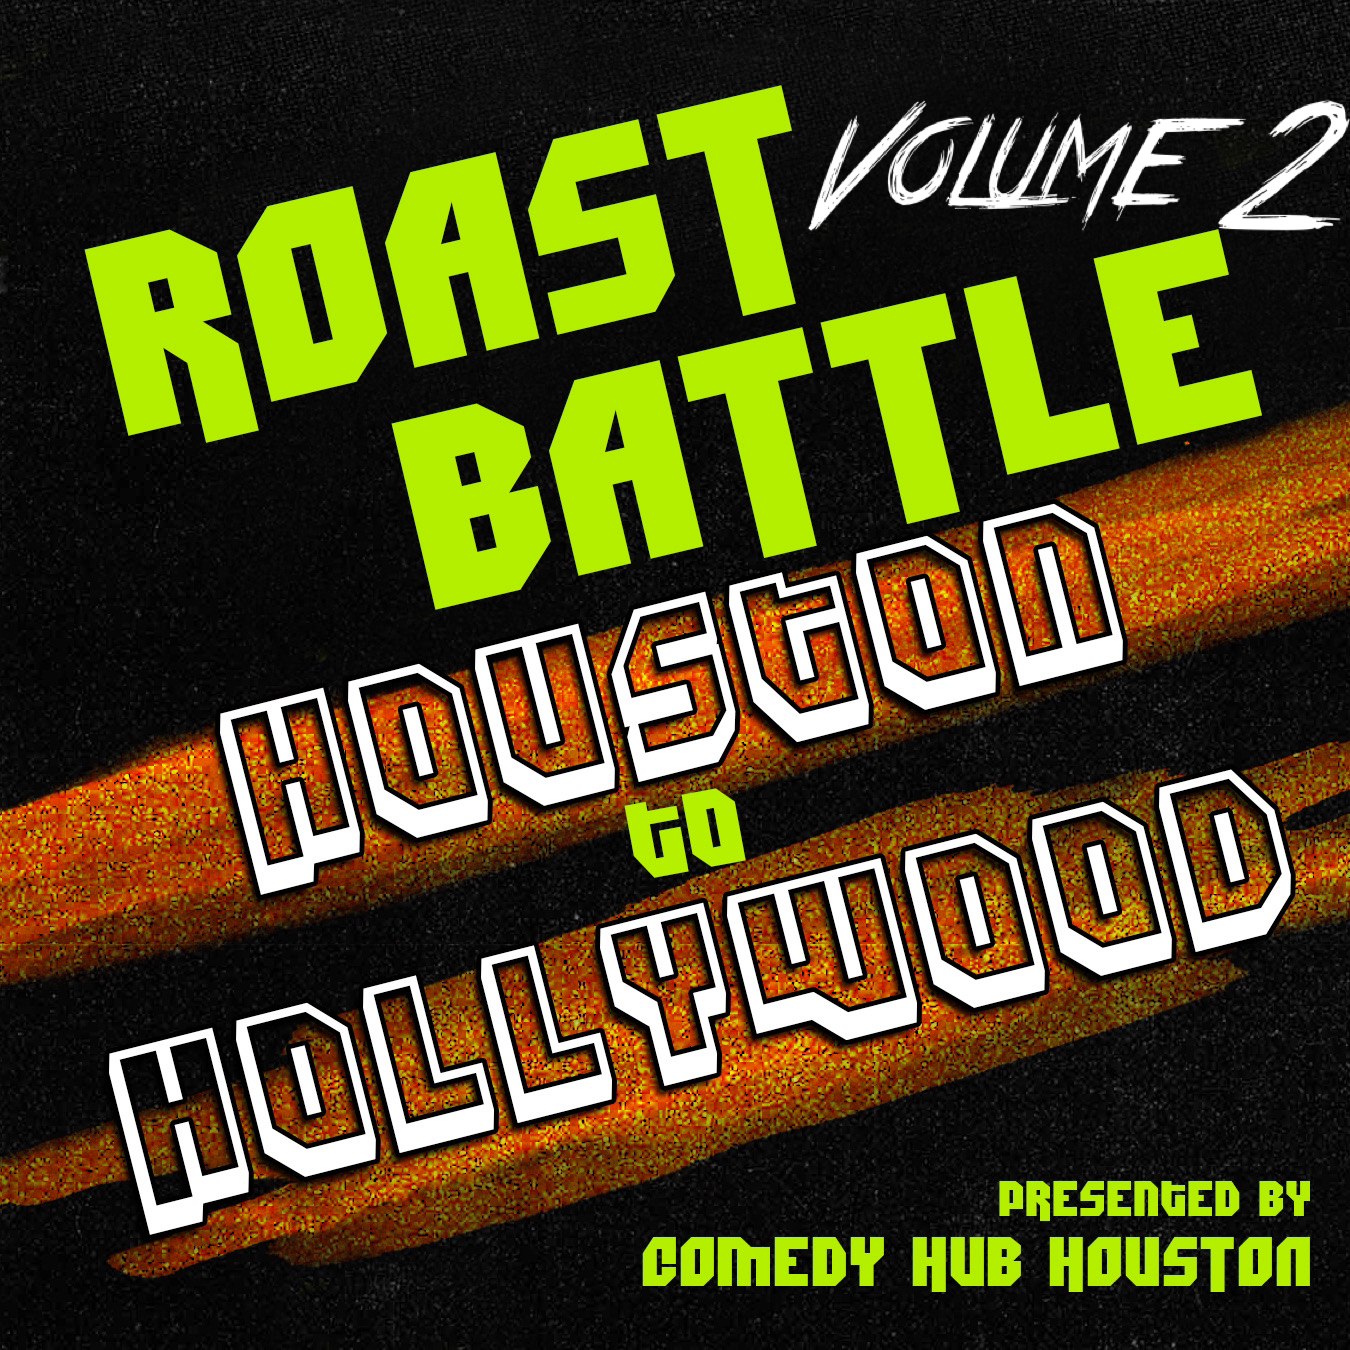 CONTESTANT SUBMISSION - ROAST BATTLE Volume 2